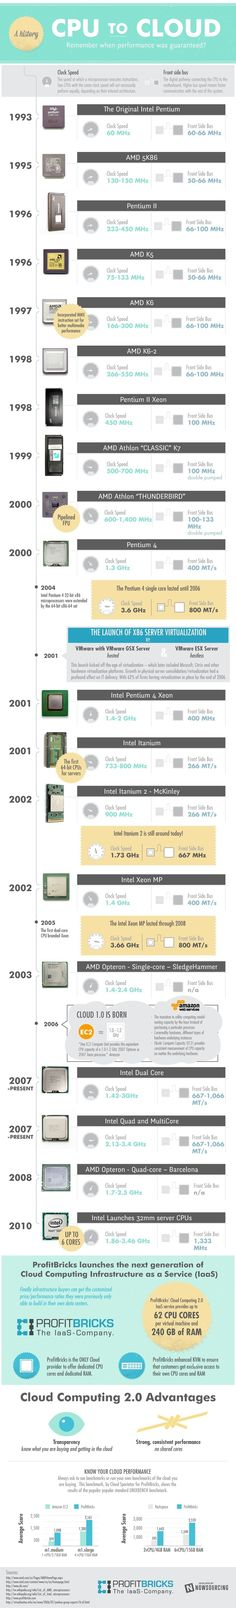 Performance of Server Class CPUs Pre and Post Cloud Computing [Infographic] - Business 2 Community